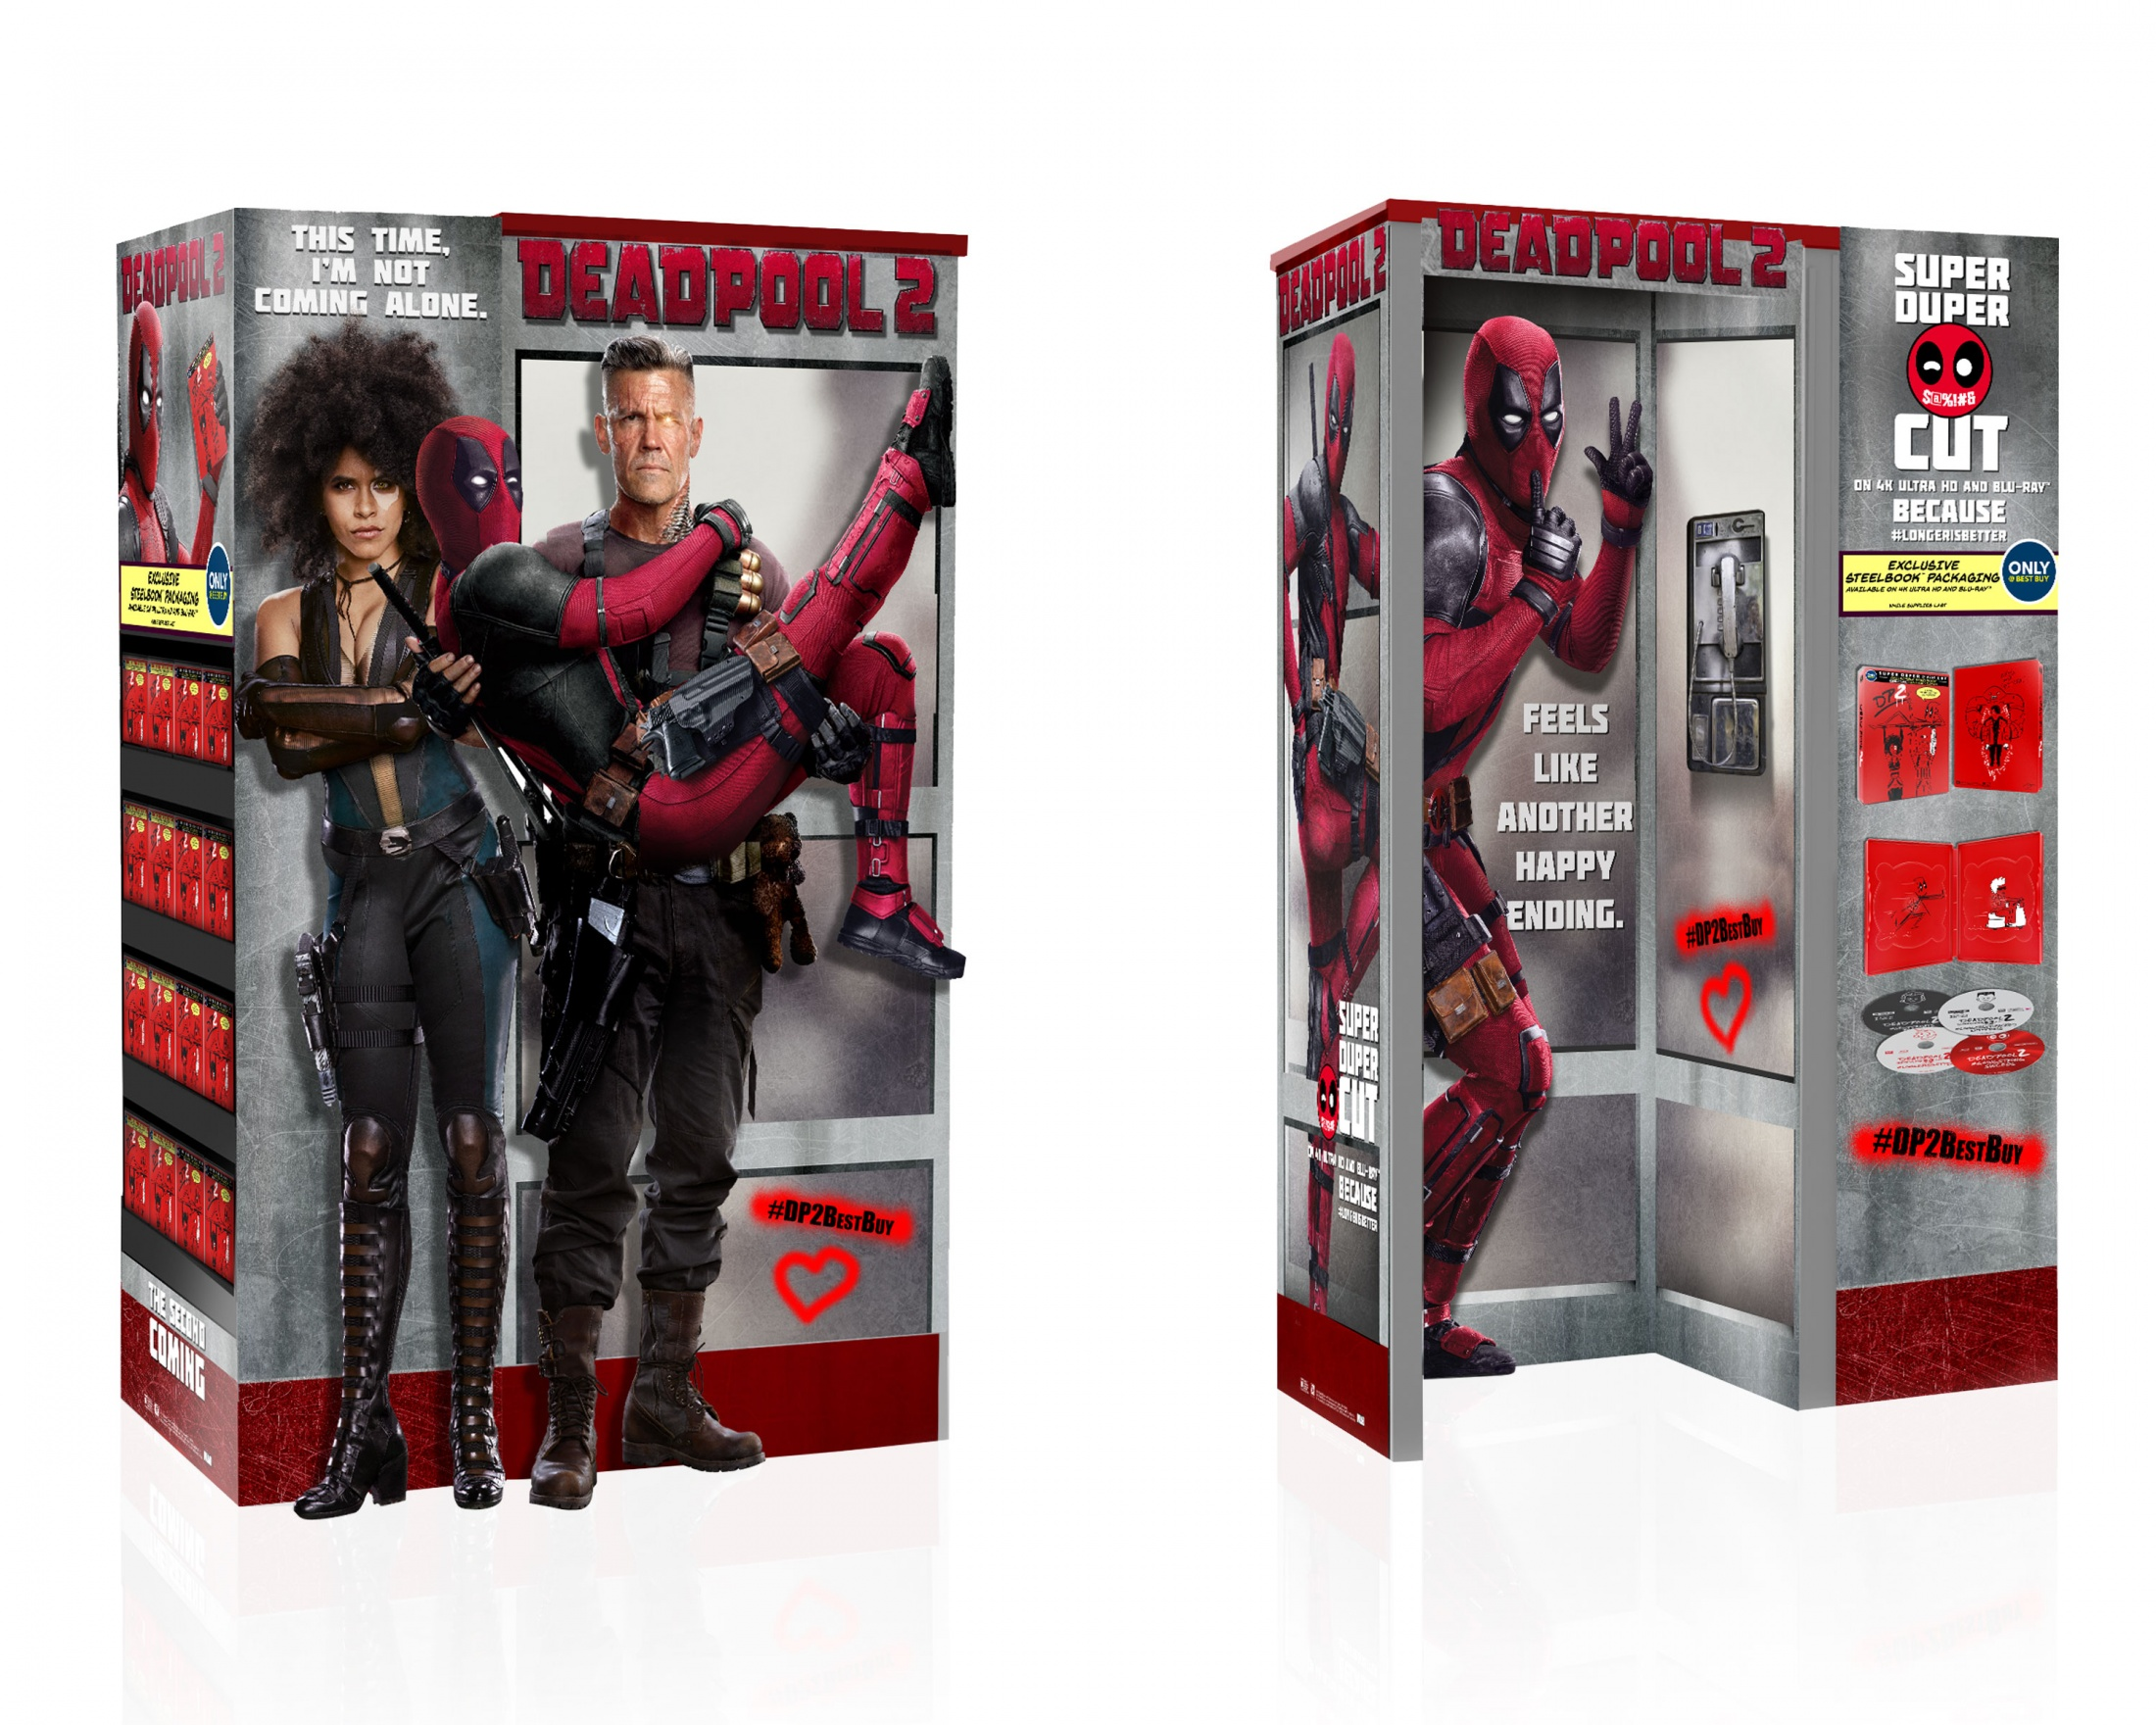 Thumbnail for DEADPOOL 2 Home Entertainment Display: BBY WOW Phone Booth